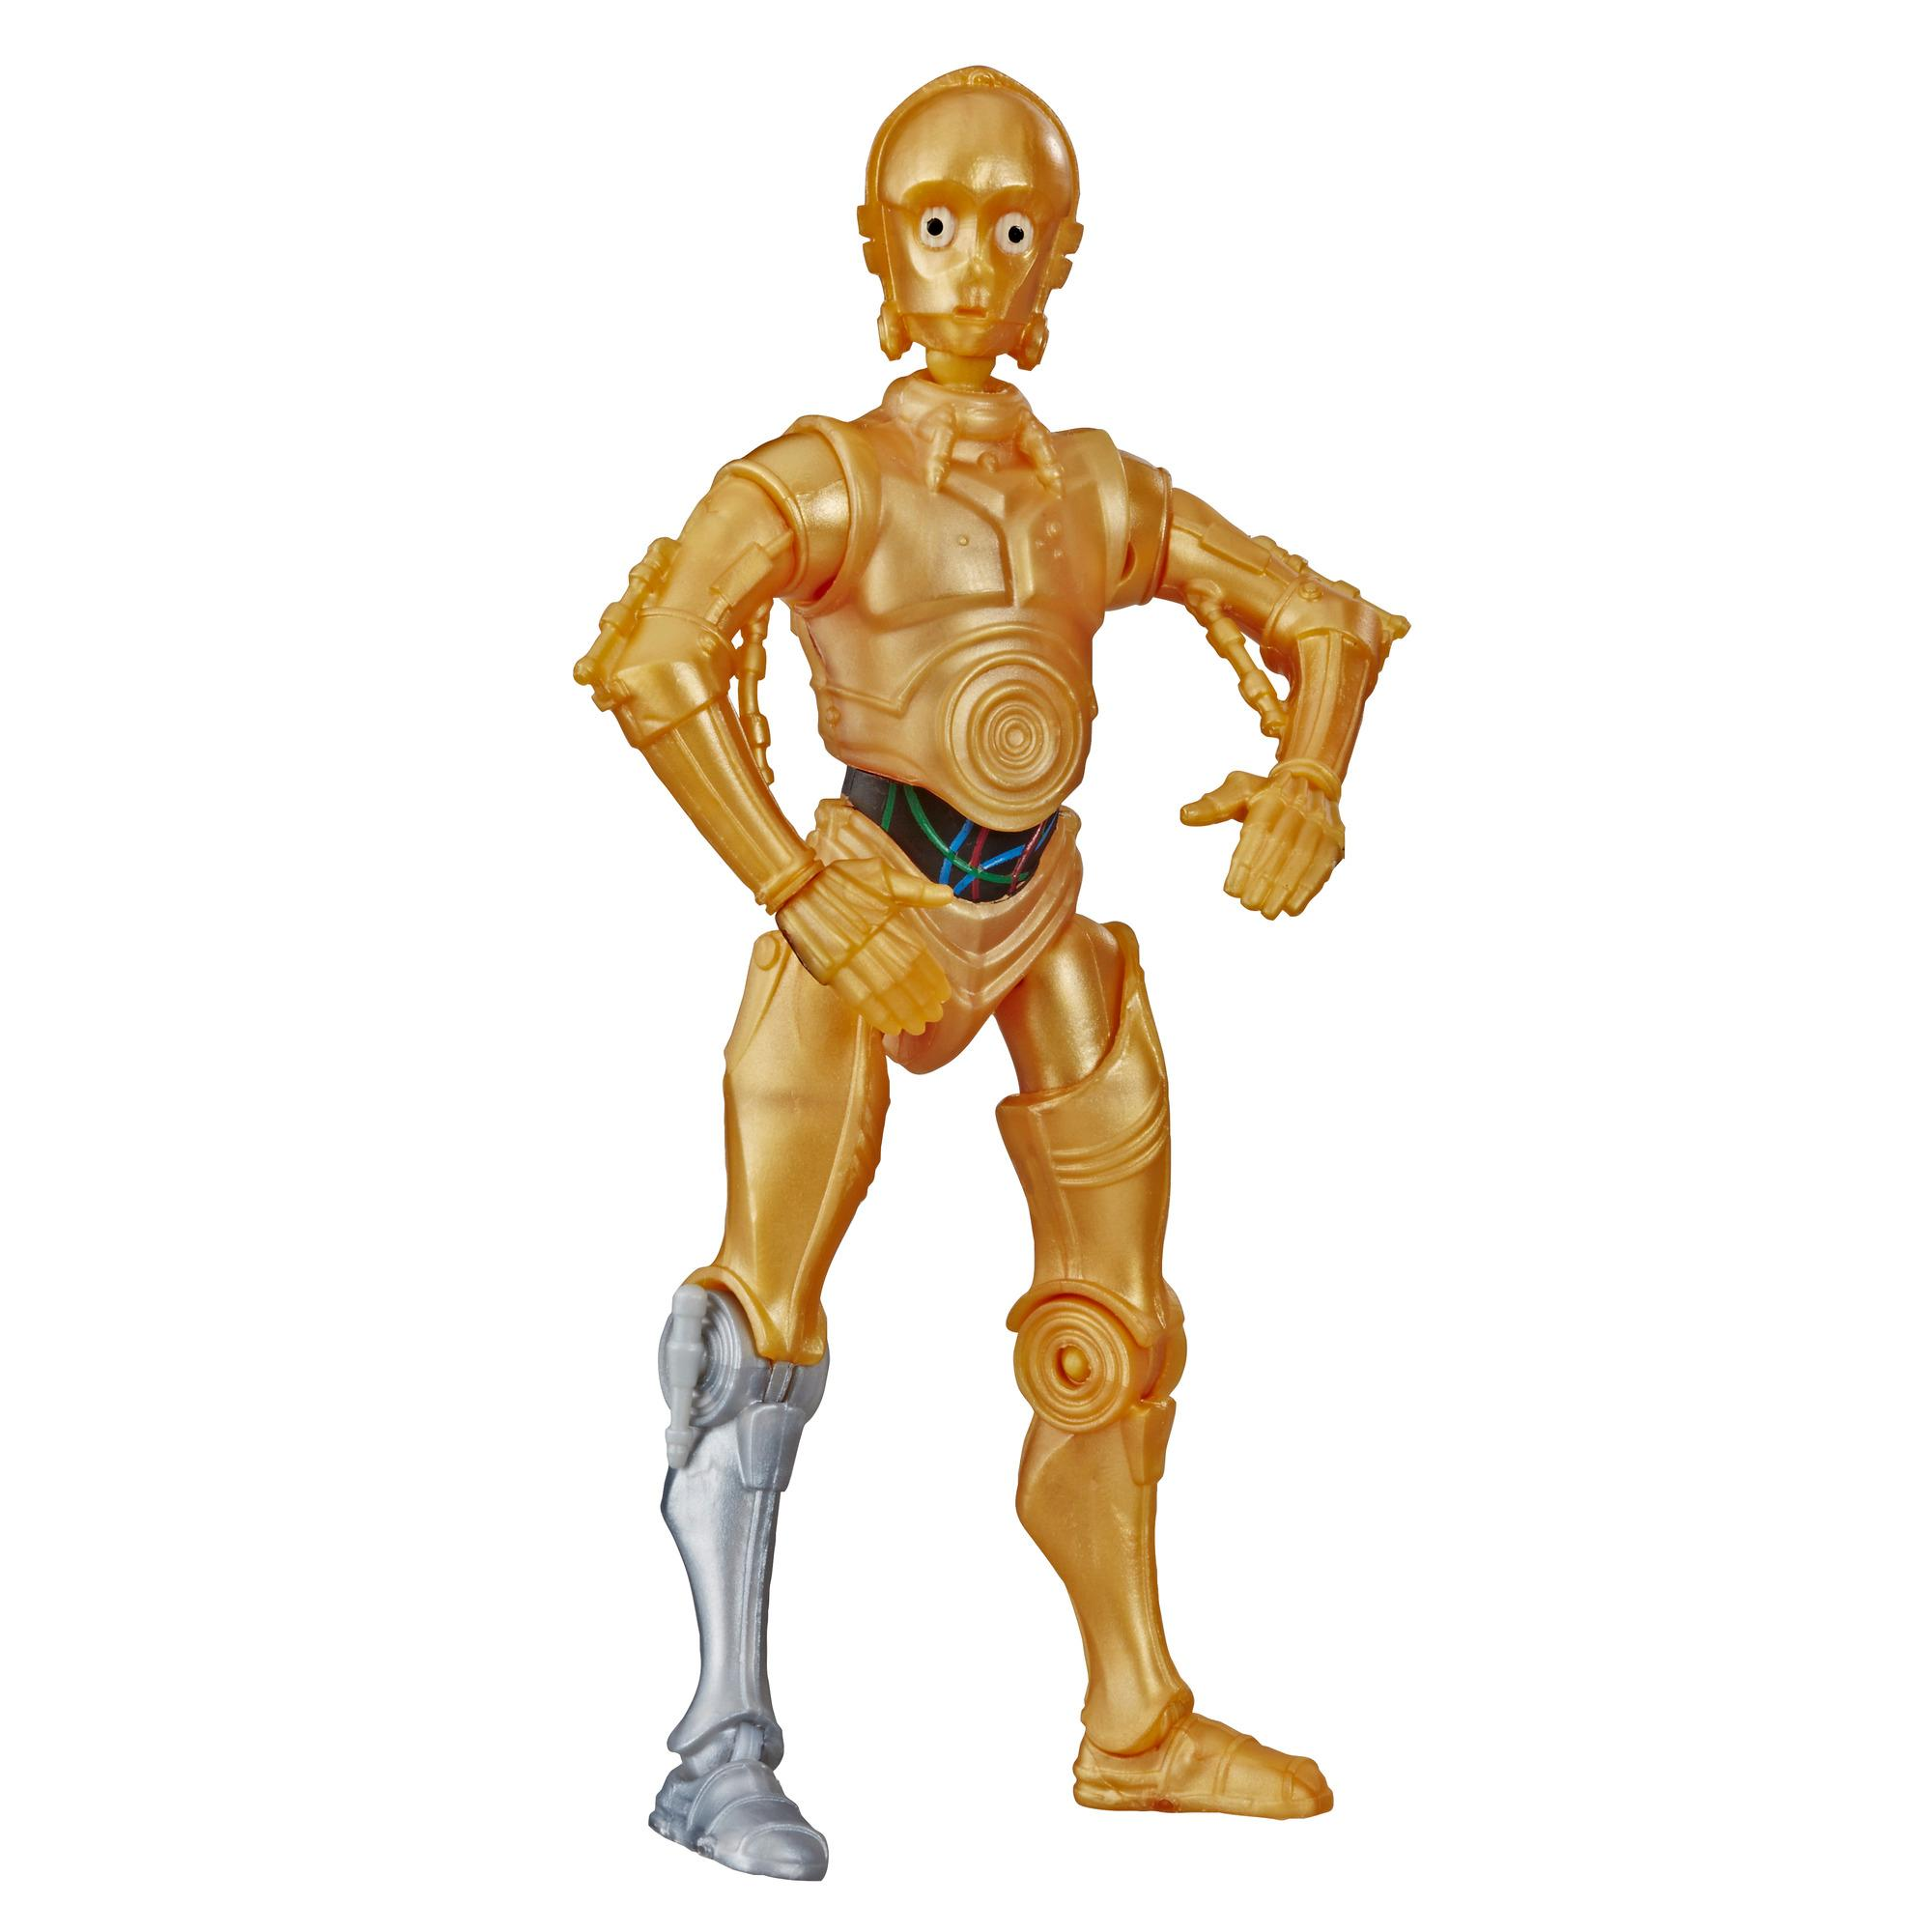 STAR WARS FIGURINE 12 CM C3PO